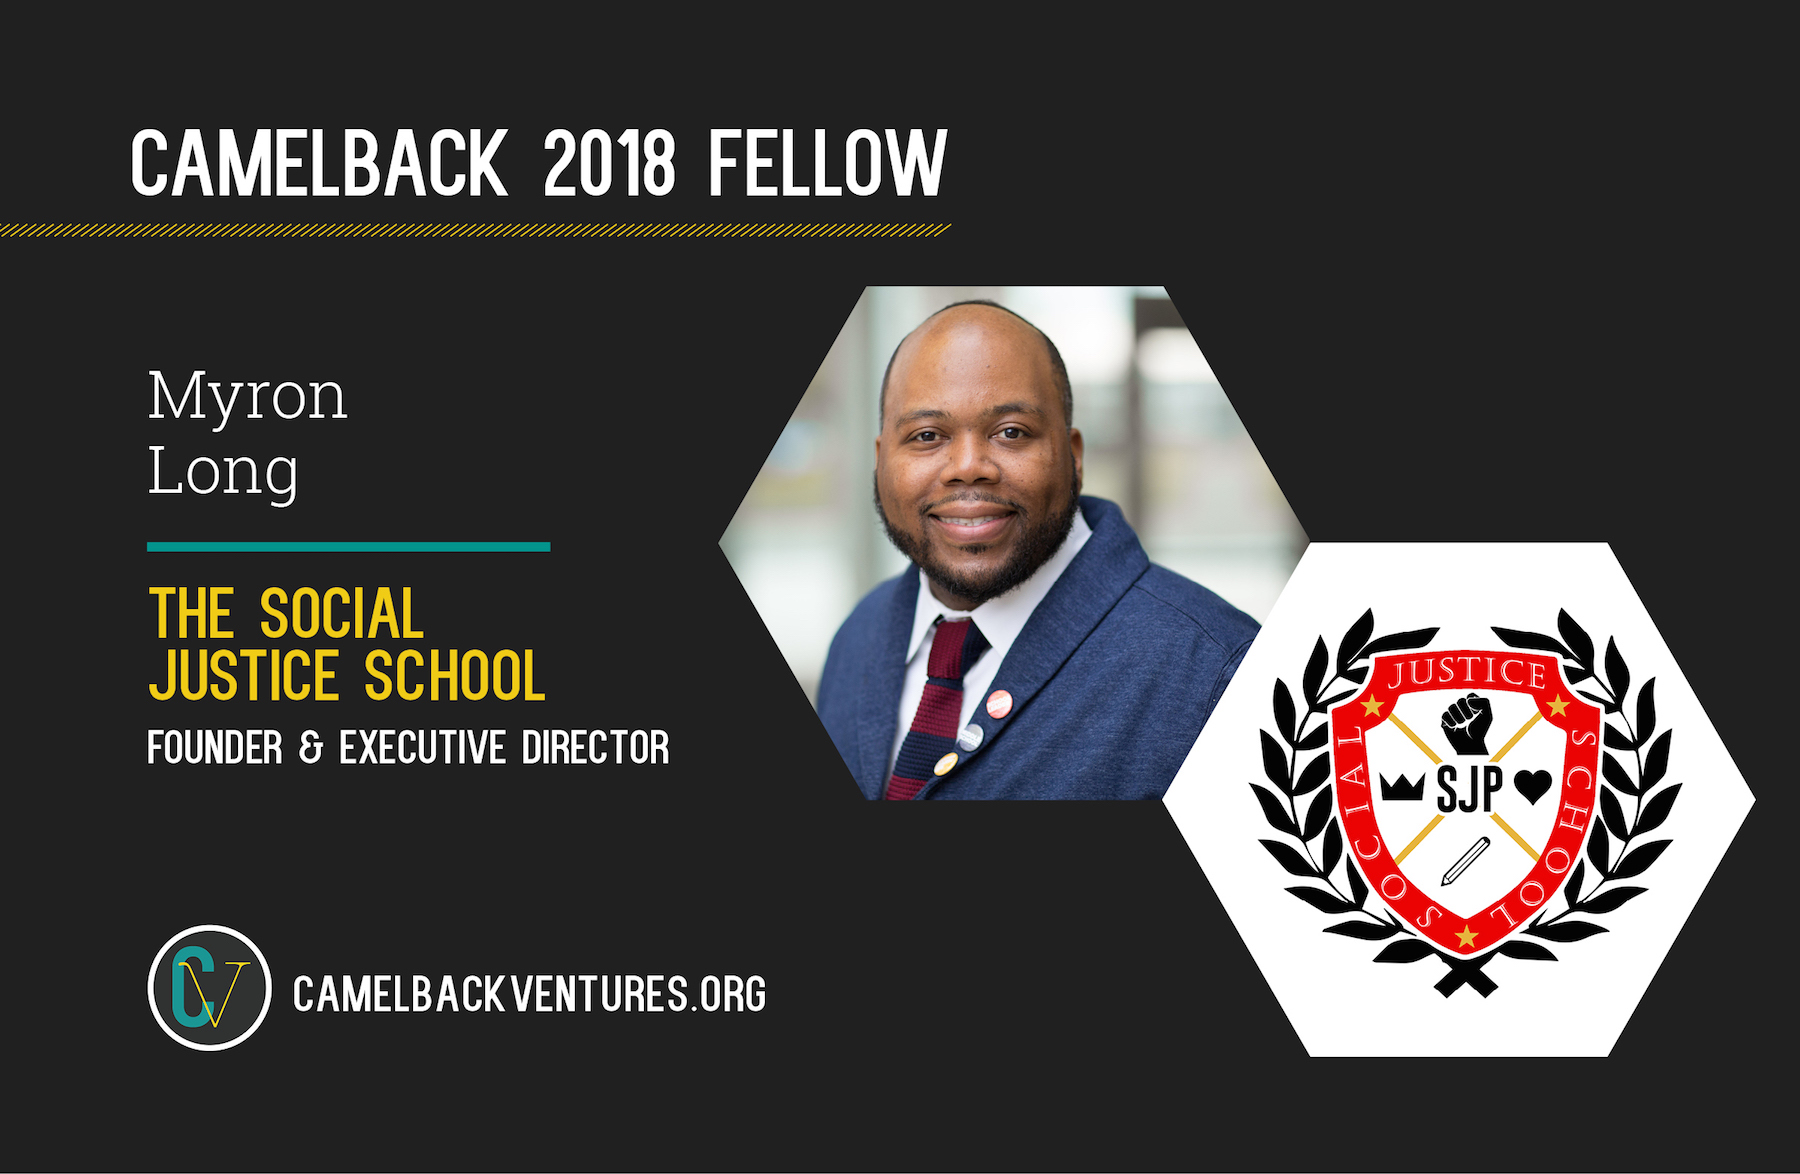 2018camelbackfellows_myron.jpg